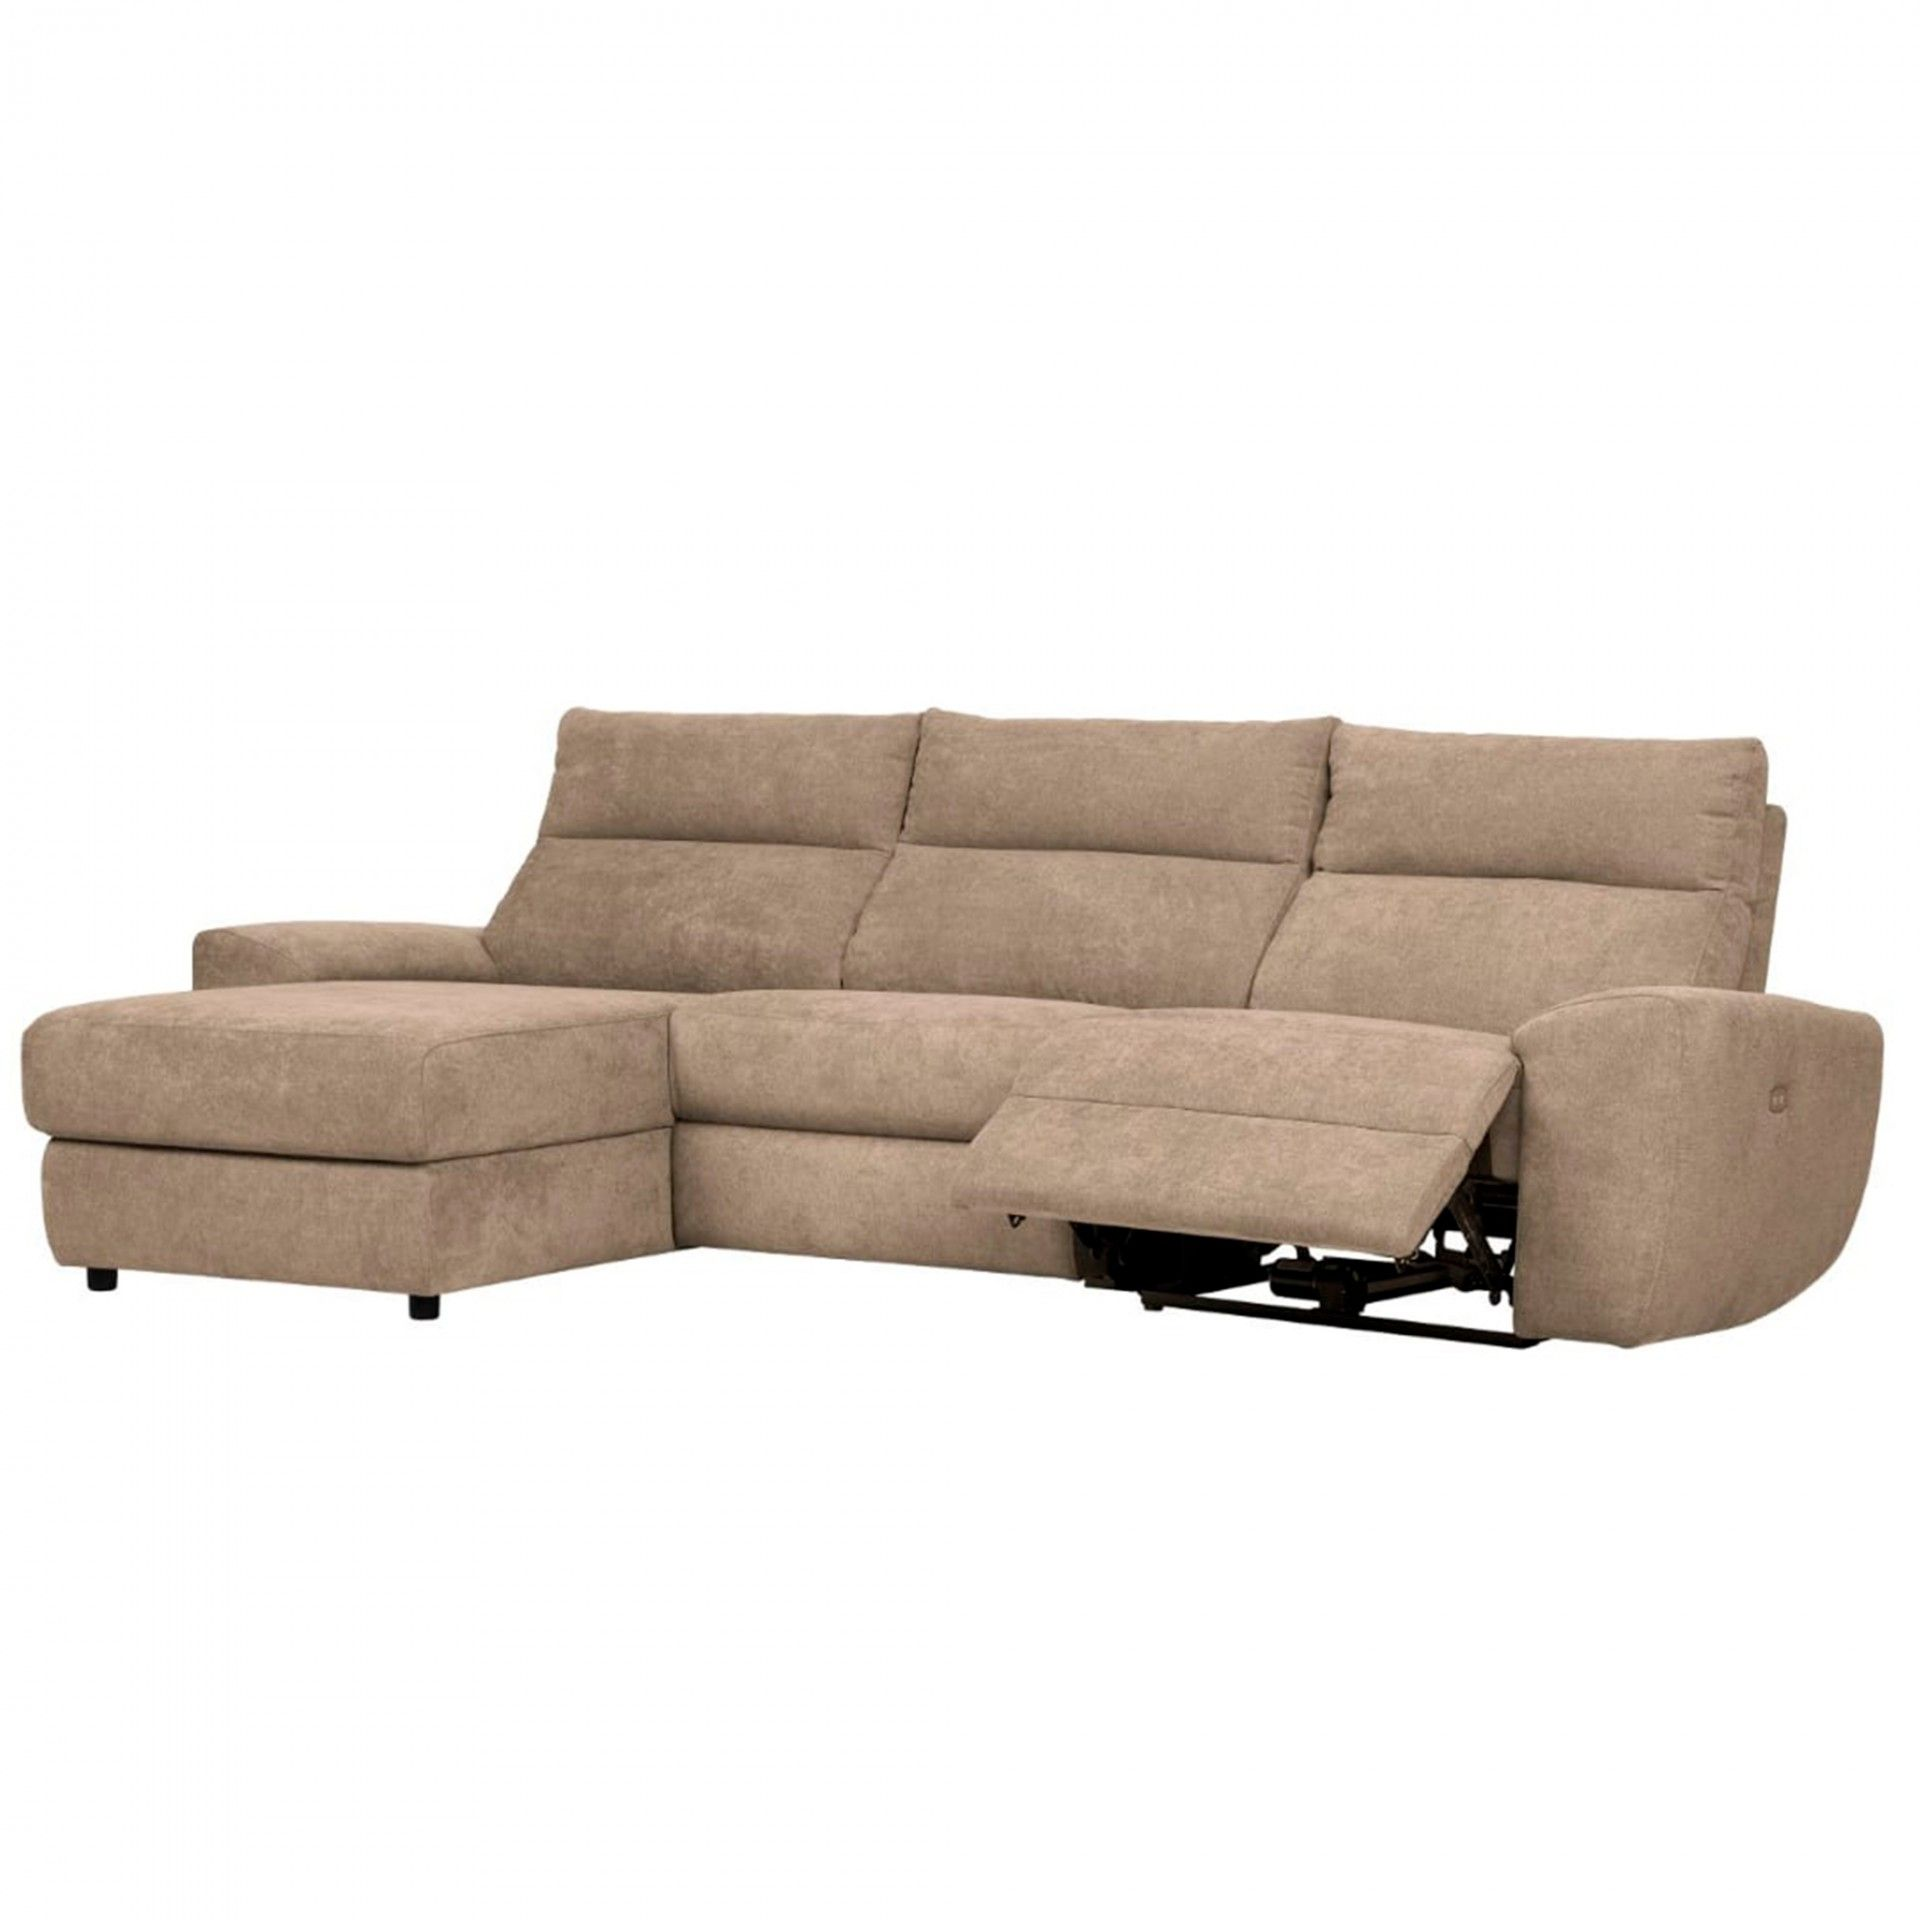 chaise Longue com relax Pittsburgh \ Moviflor